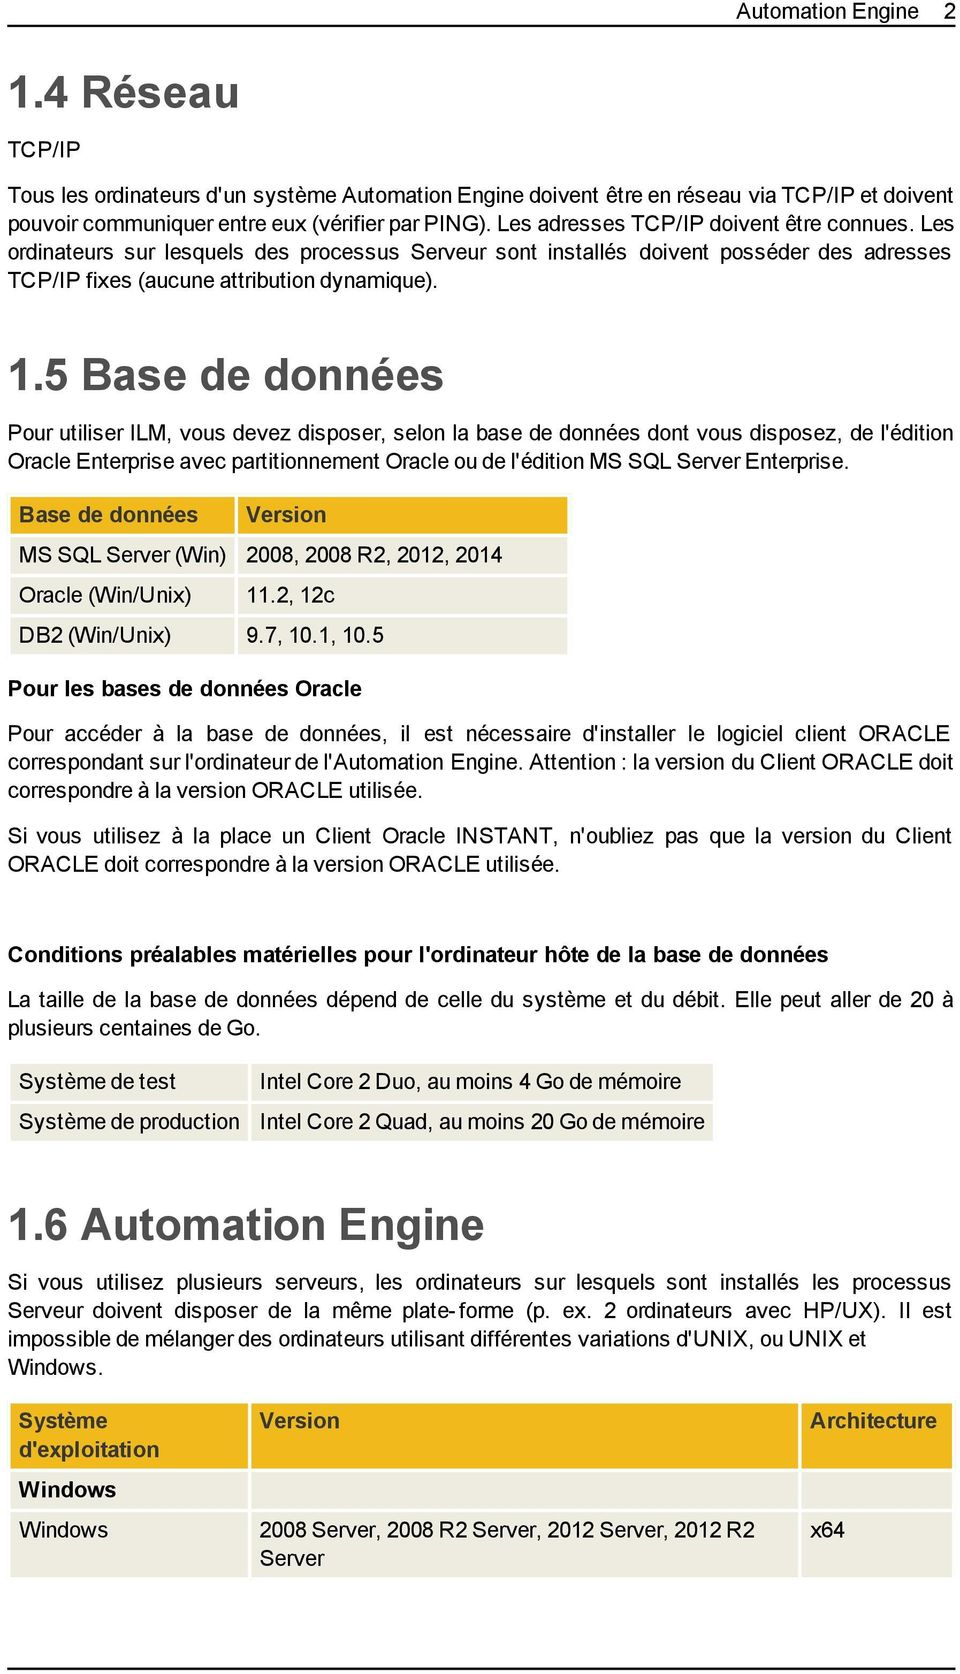 5 Base de données Pour utiliser ILM, vous devez disposer, selon la base de données dont vous disposez, de l'édition Oracle Enterprise avec partitionnement Oracle ou de l'édition MS SQL Server